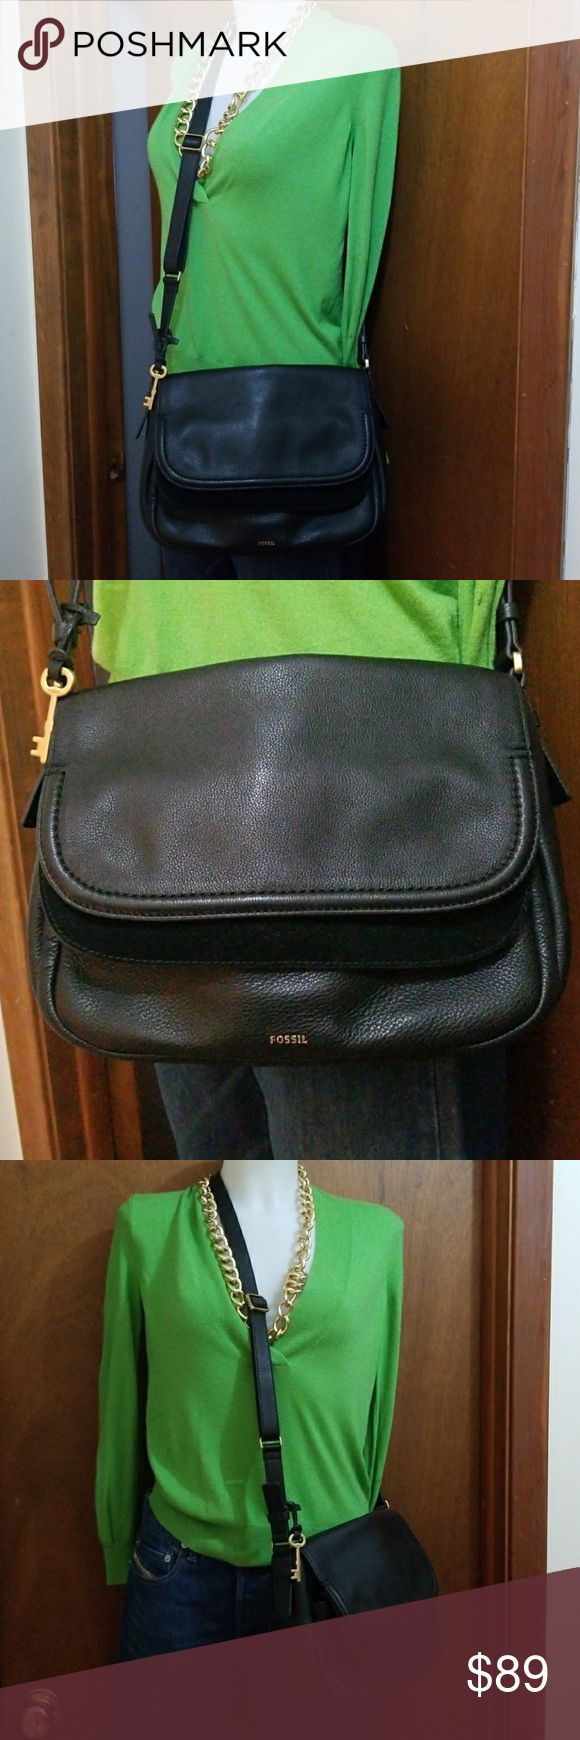 Fossil Peyton double flap large crossbody purse Measurements: Bottom Width: 11 in Depth: 3 in Height: 8 in Strap Length: 50 in Strap Drop: 23 1⁄4 in  Awesome glove soft pebbled full grain leather Peyton double flap large crossbody messenger bag black.  No obvious flaws or wear, great purse! Fossil Bags Crossbody Bags